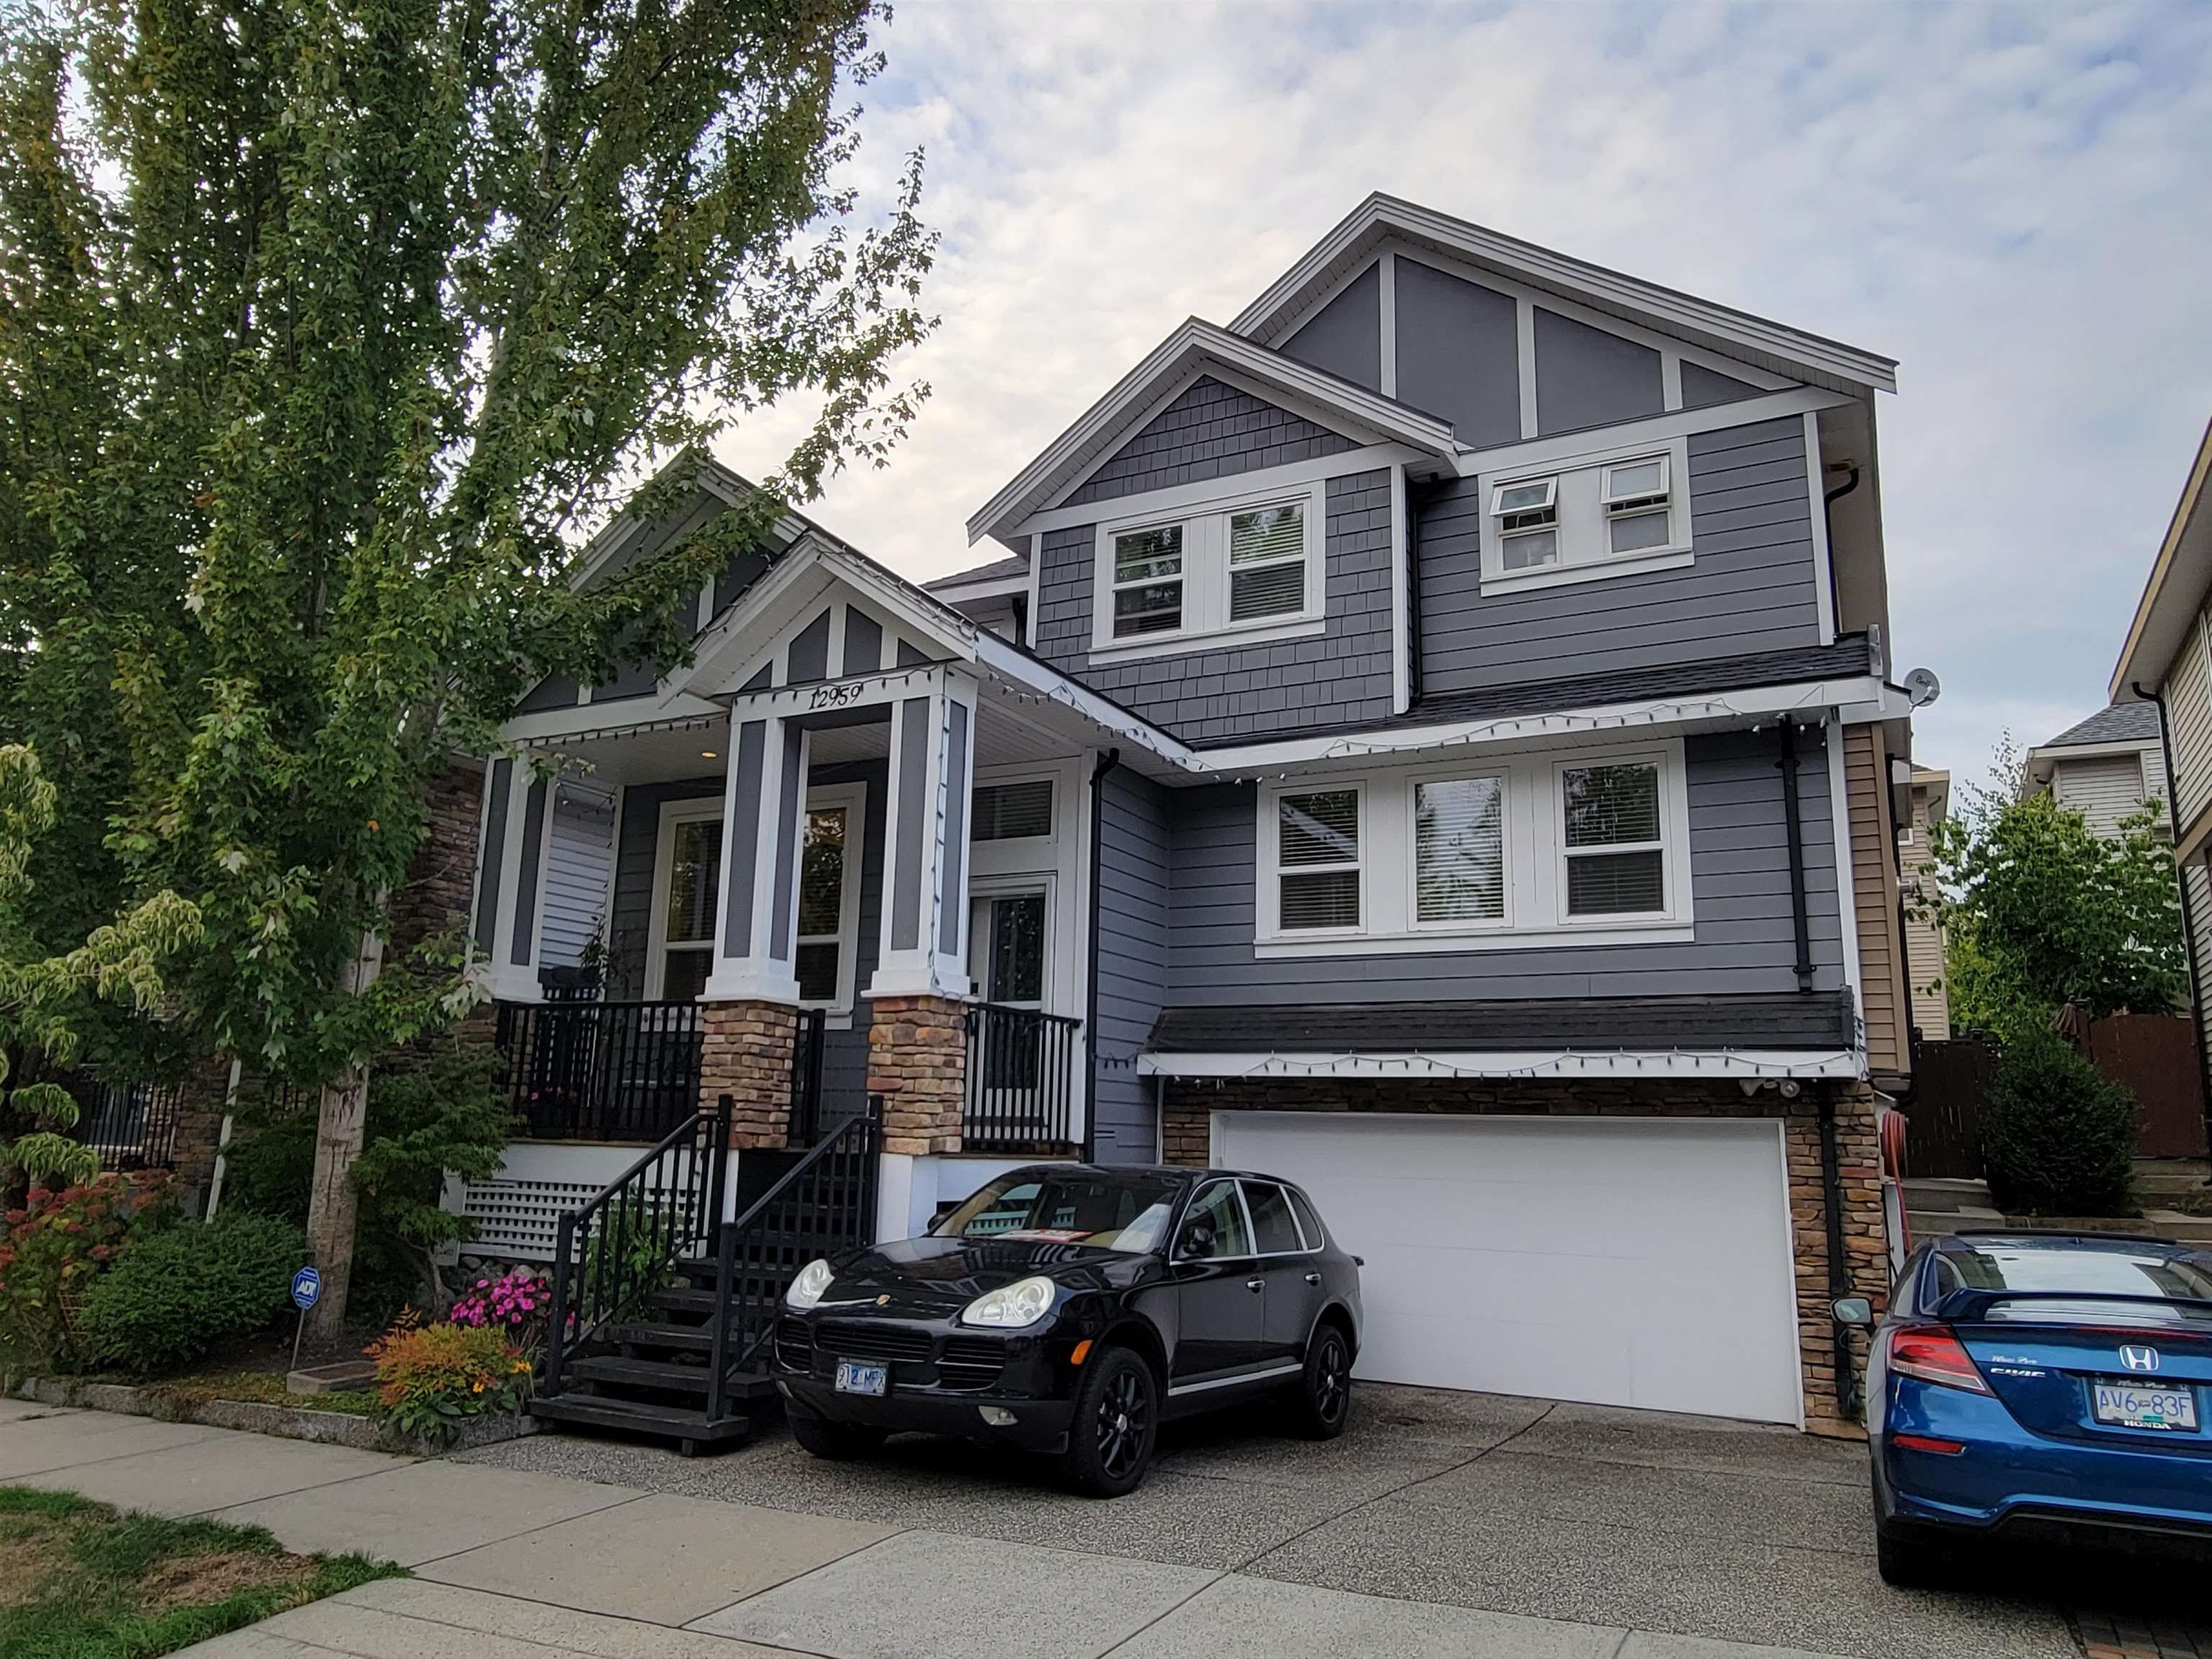 Main Photo: 12959 58A Avenue in Surrey: Panorama Ridge House for sale : MLS®# R2615002